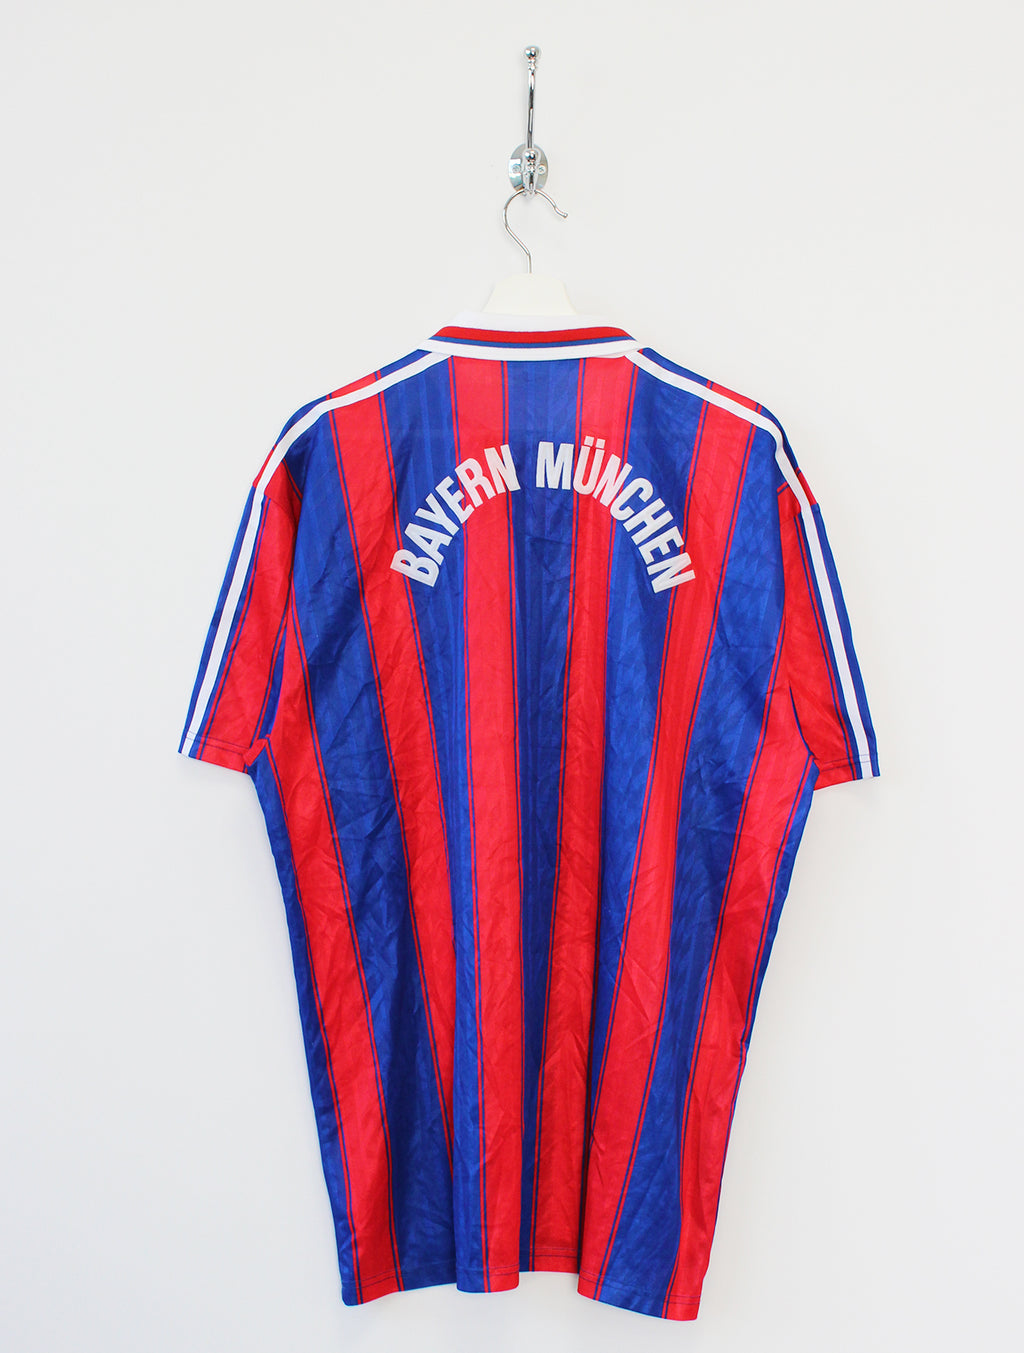 1995/96 Bayern Munich Football Shirt (XL)